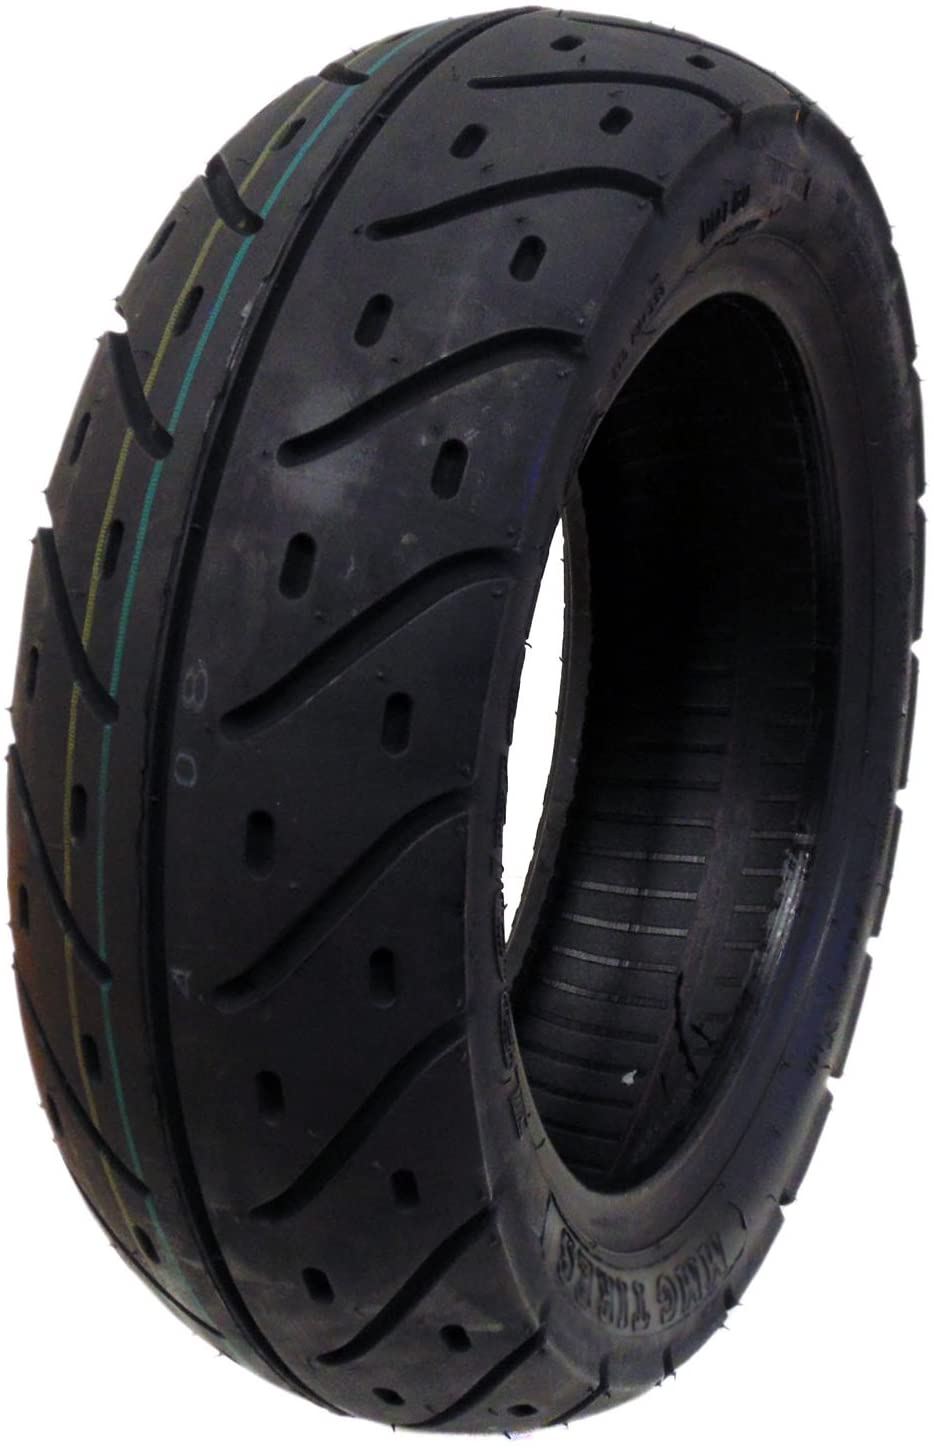 MMG Tire Size 120/70-10 Motorcycle Scooter Tubeless DOT Approved